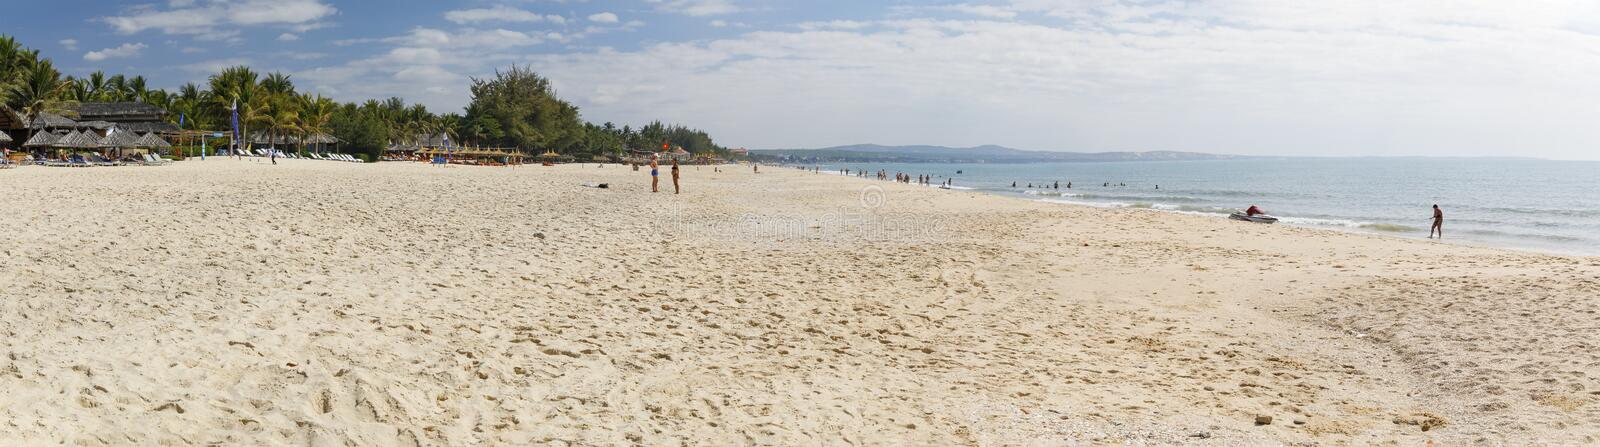 Summer beach panorama in Nam Tien, Vietnam stock photos